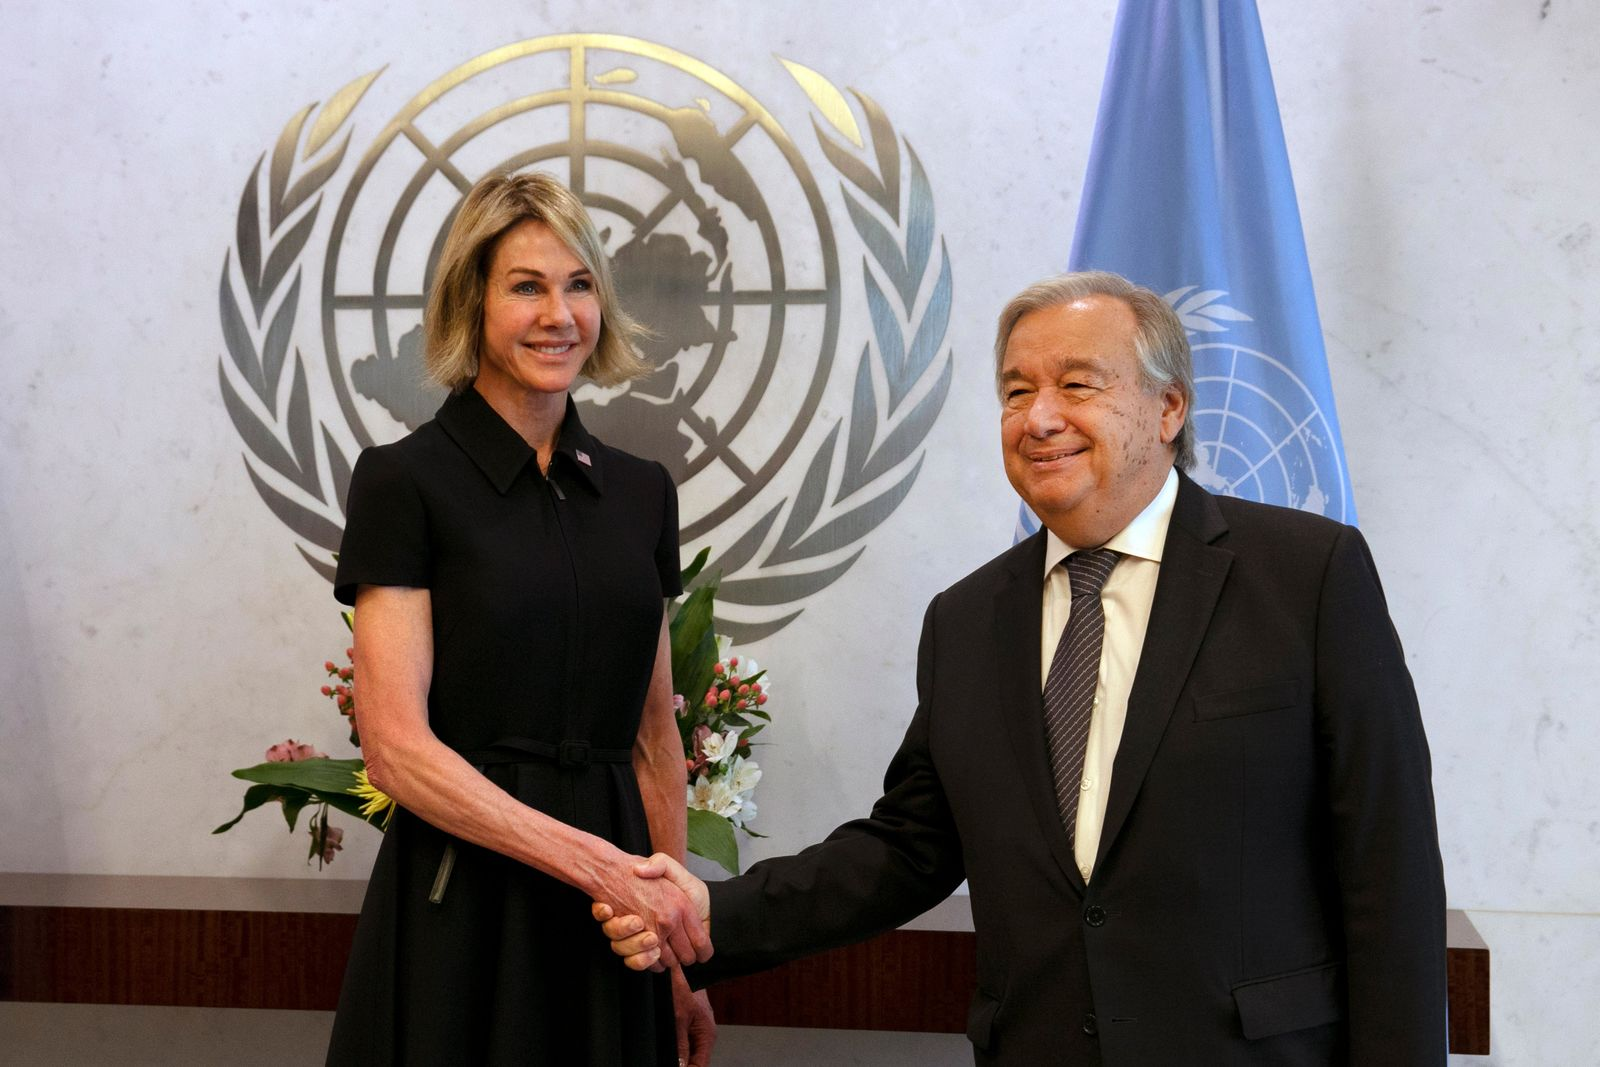 New U.S. Ambassador Kelly Craft shakes hands UN Secretary General Antonio Guterres after she presented her cresentials at United Nations headquarters, Thursday, Sept. 12, 2019. (AP Photo/Richard Drew)